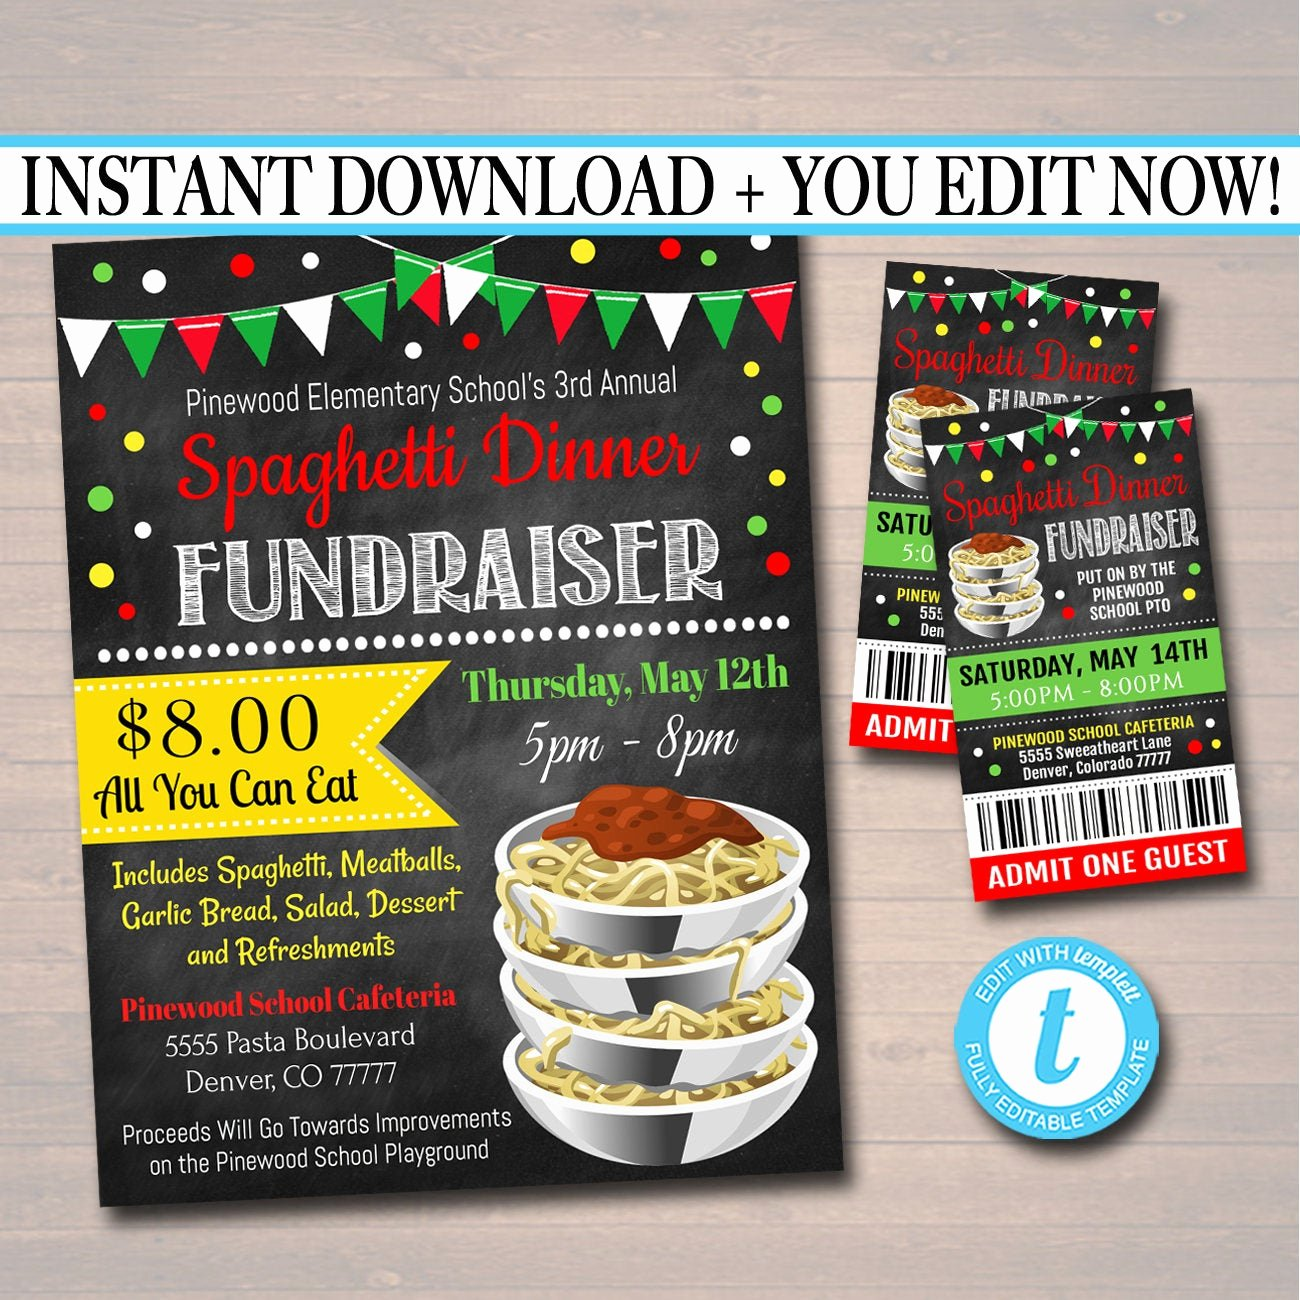 Spaghetti Dinner Fundraiser Flyer Template Lovely Editable Spaghetti Dinner Fundraiser Flyer Ticket Set Pto